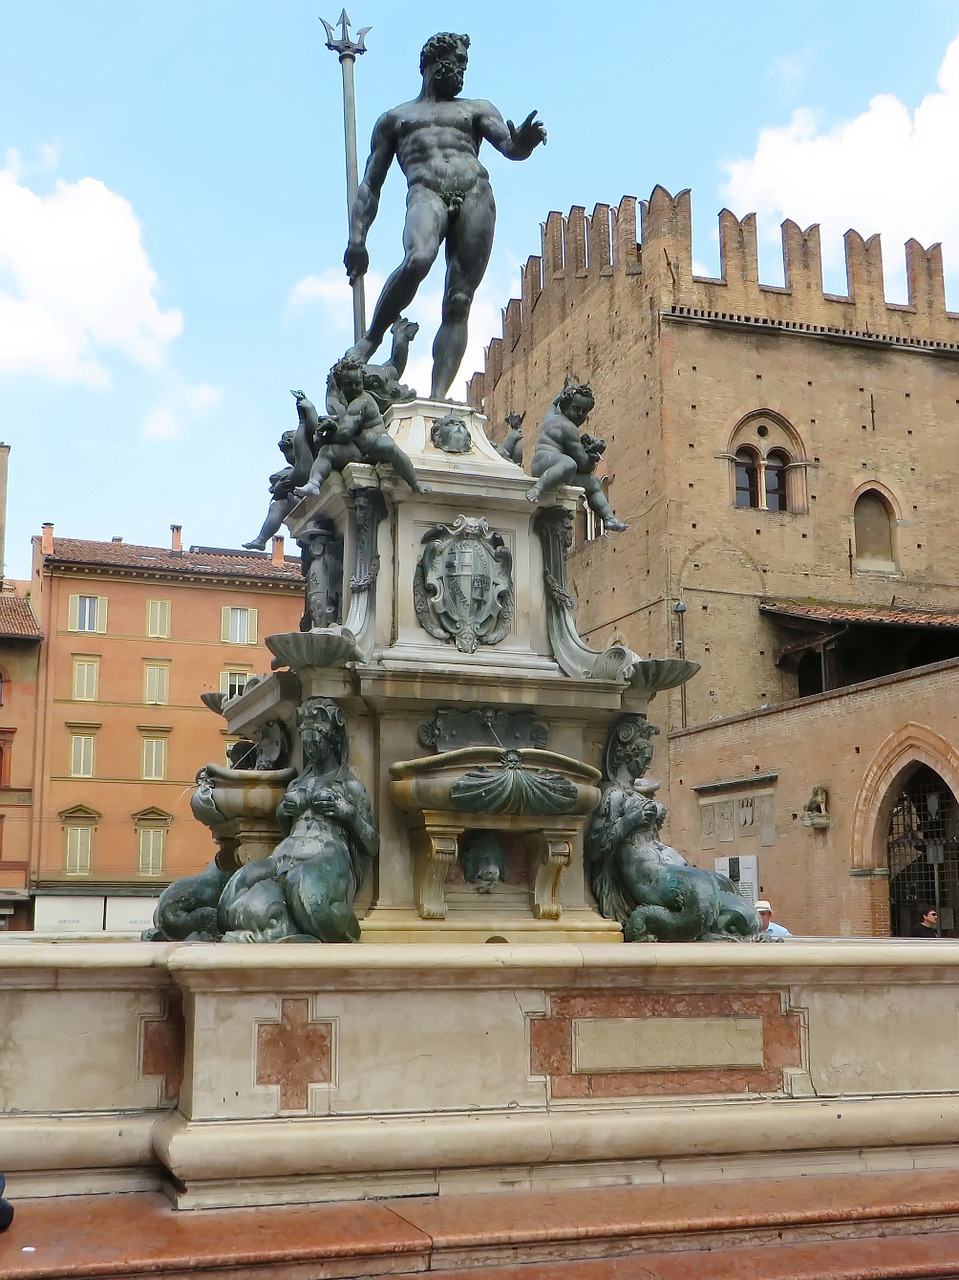 The Neptune Fountain is one of the best things to see in Bologna Italy. Read this guide to Bologna and discover the top attractions in Bologna, where to stay in Bologna, and where to eat in Bologna, #bologna #italy #bolognaguide #europe #bolognatraveling #bolognatravel